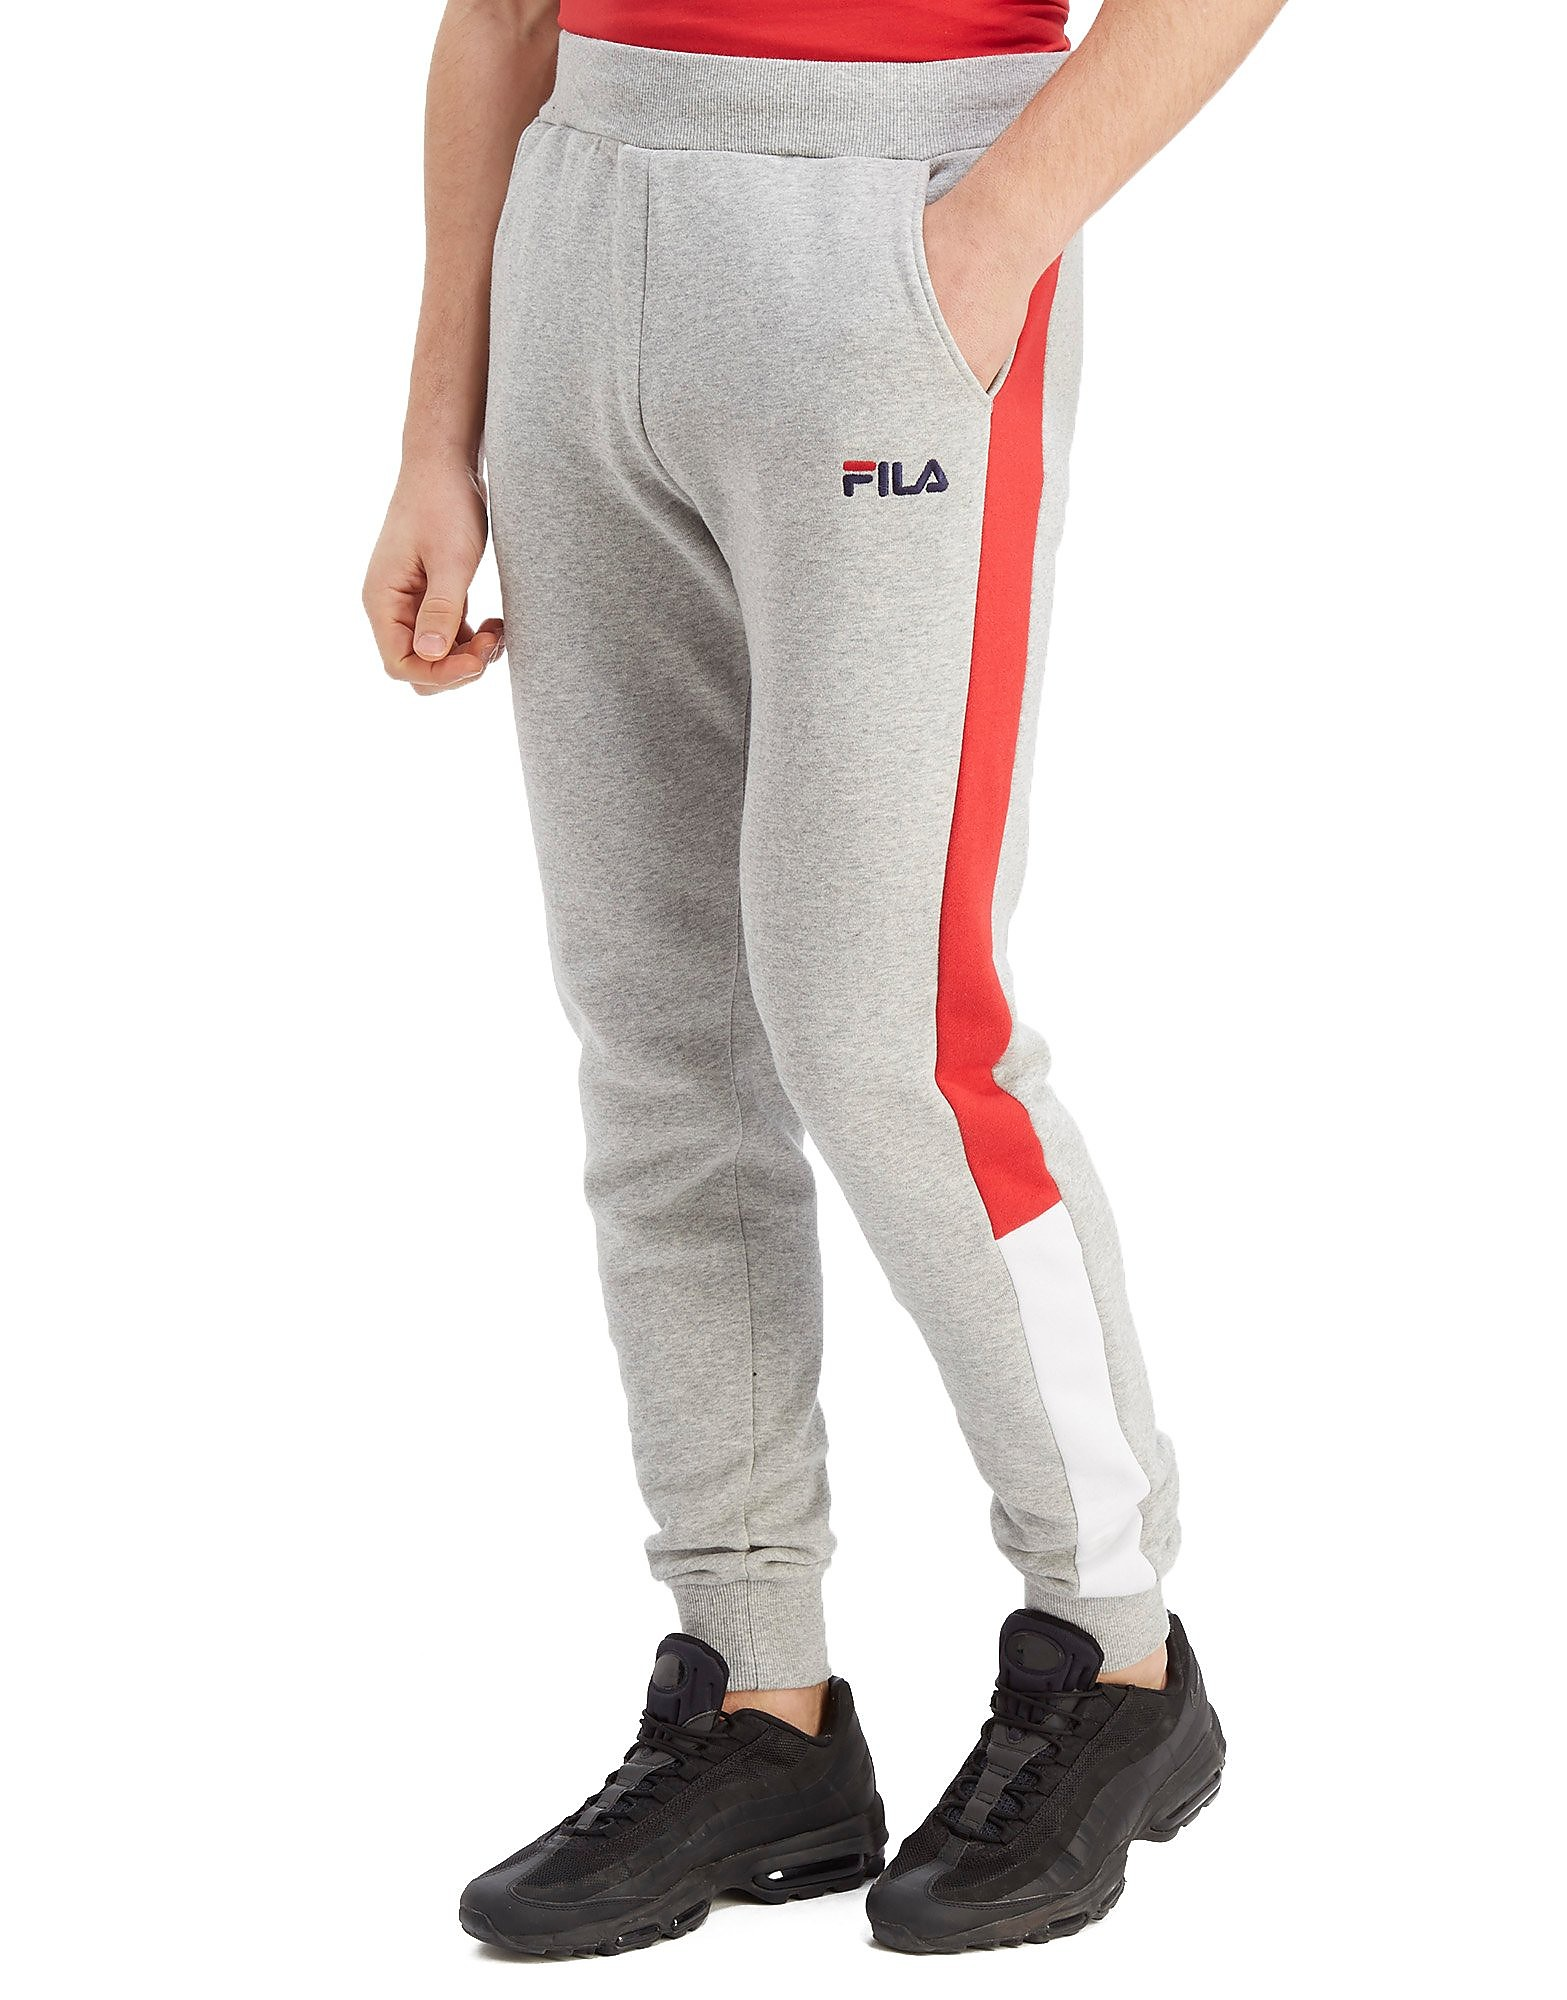 Fila Reid Fleece Pants